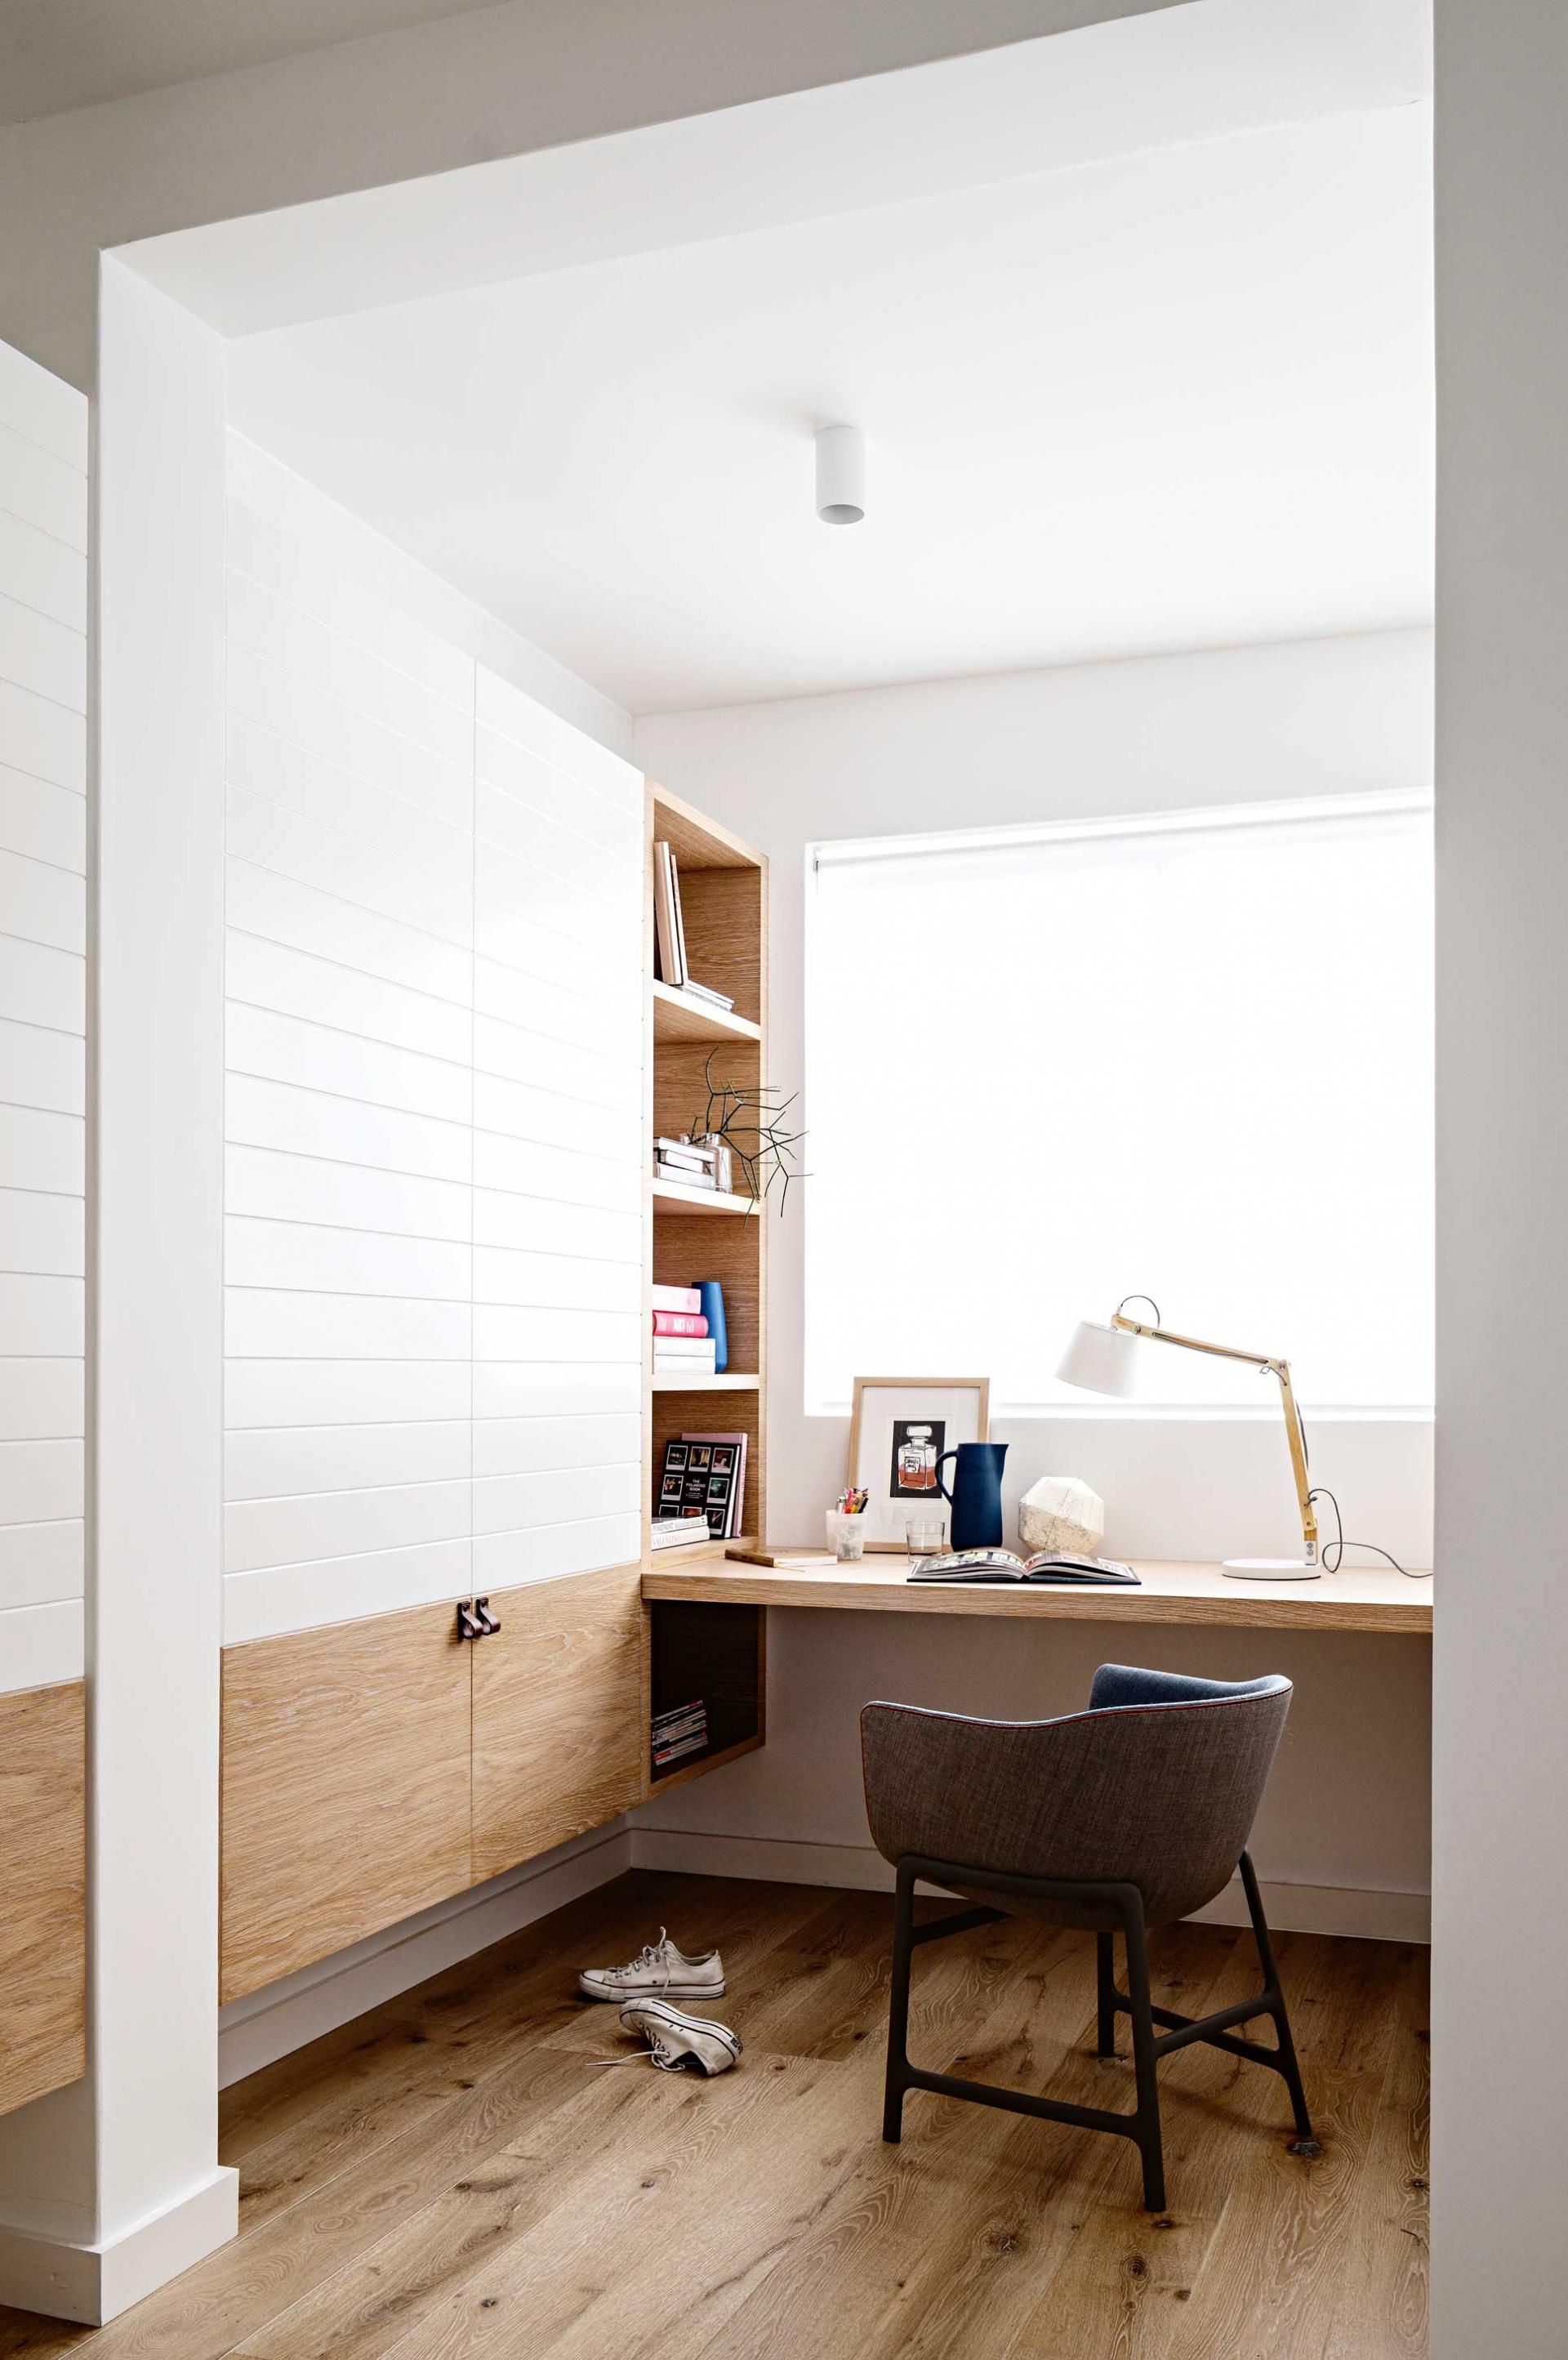 Study Room Storage: 5 Ways Bespoke Joinery Can Increase Your Storage Space